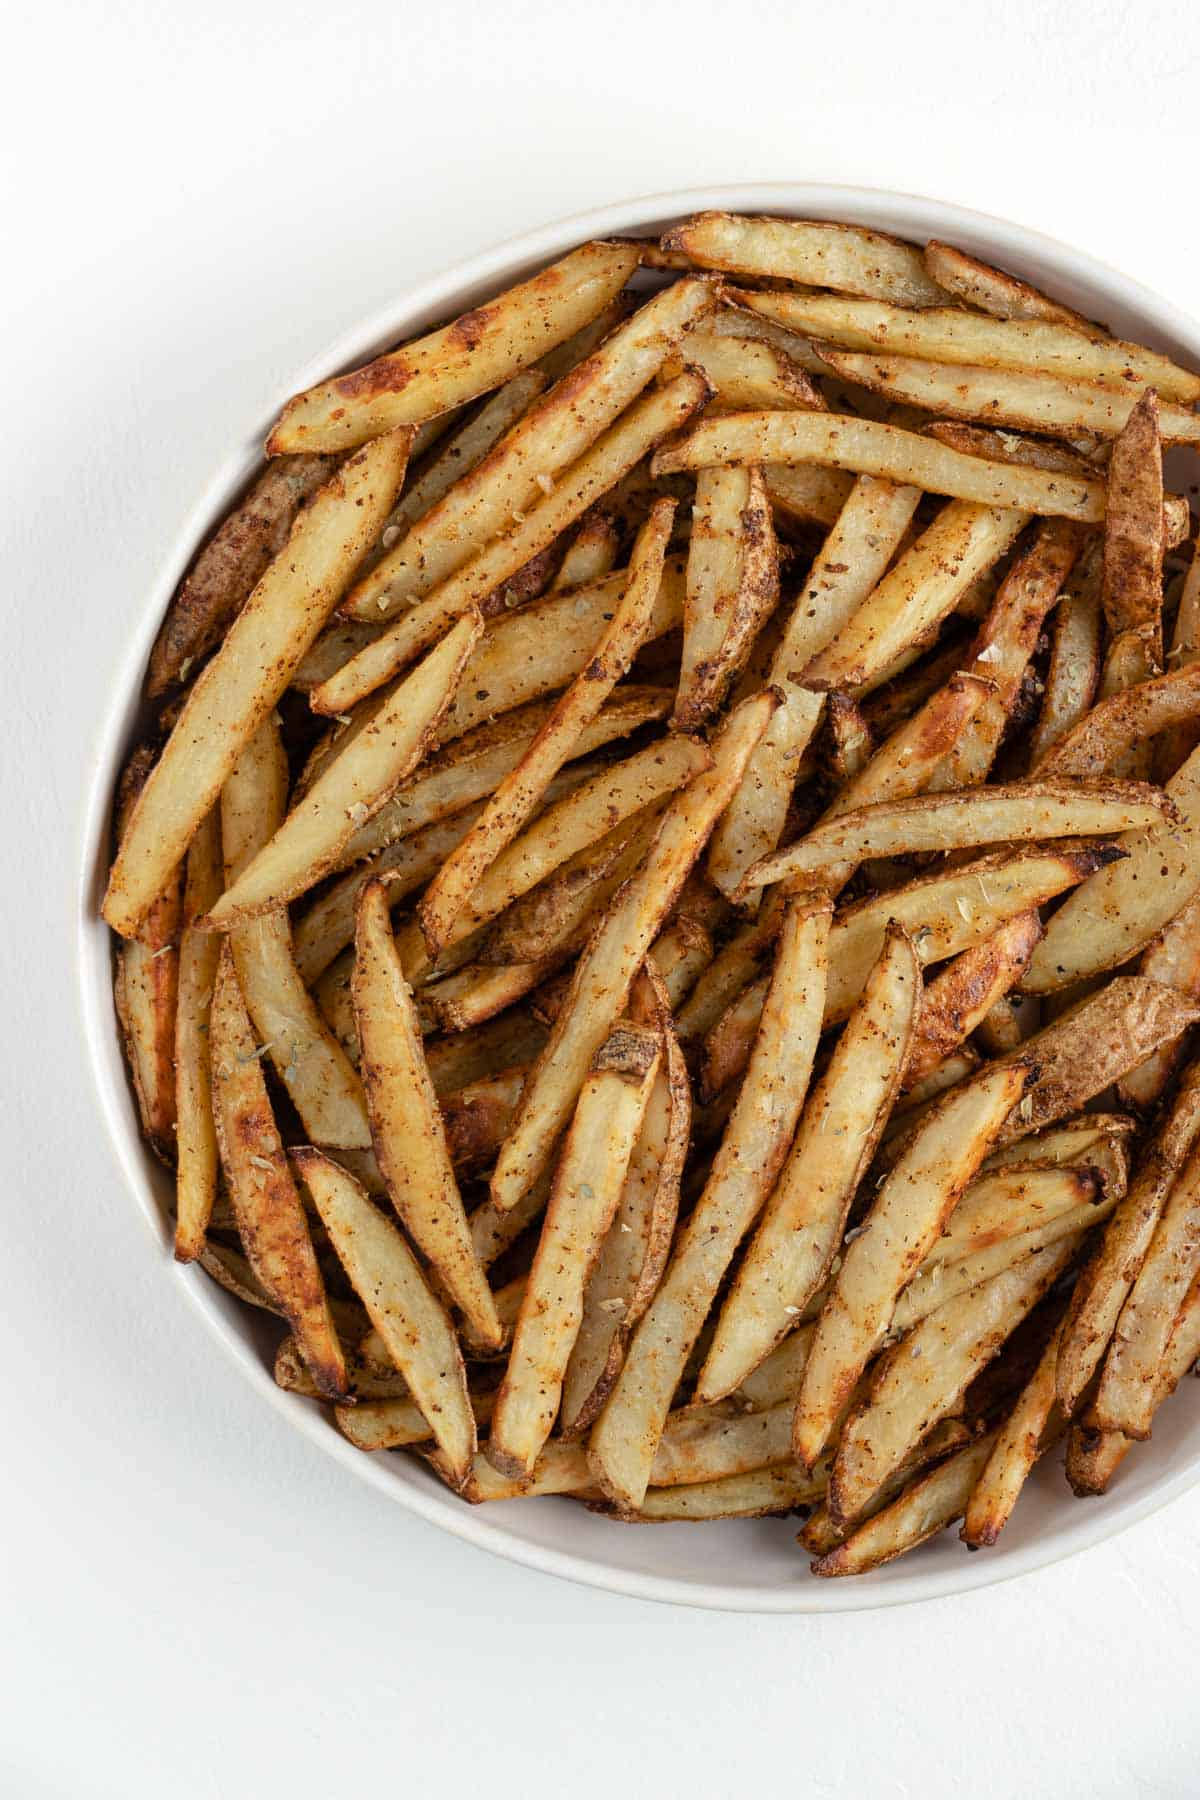 crispy baked french fries in a white bowl